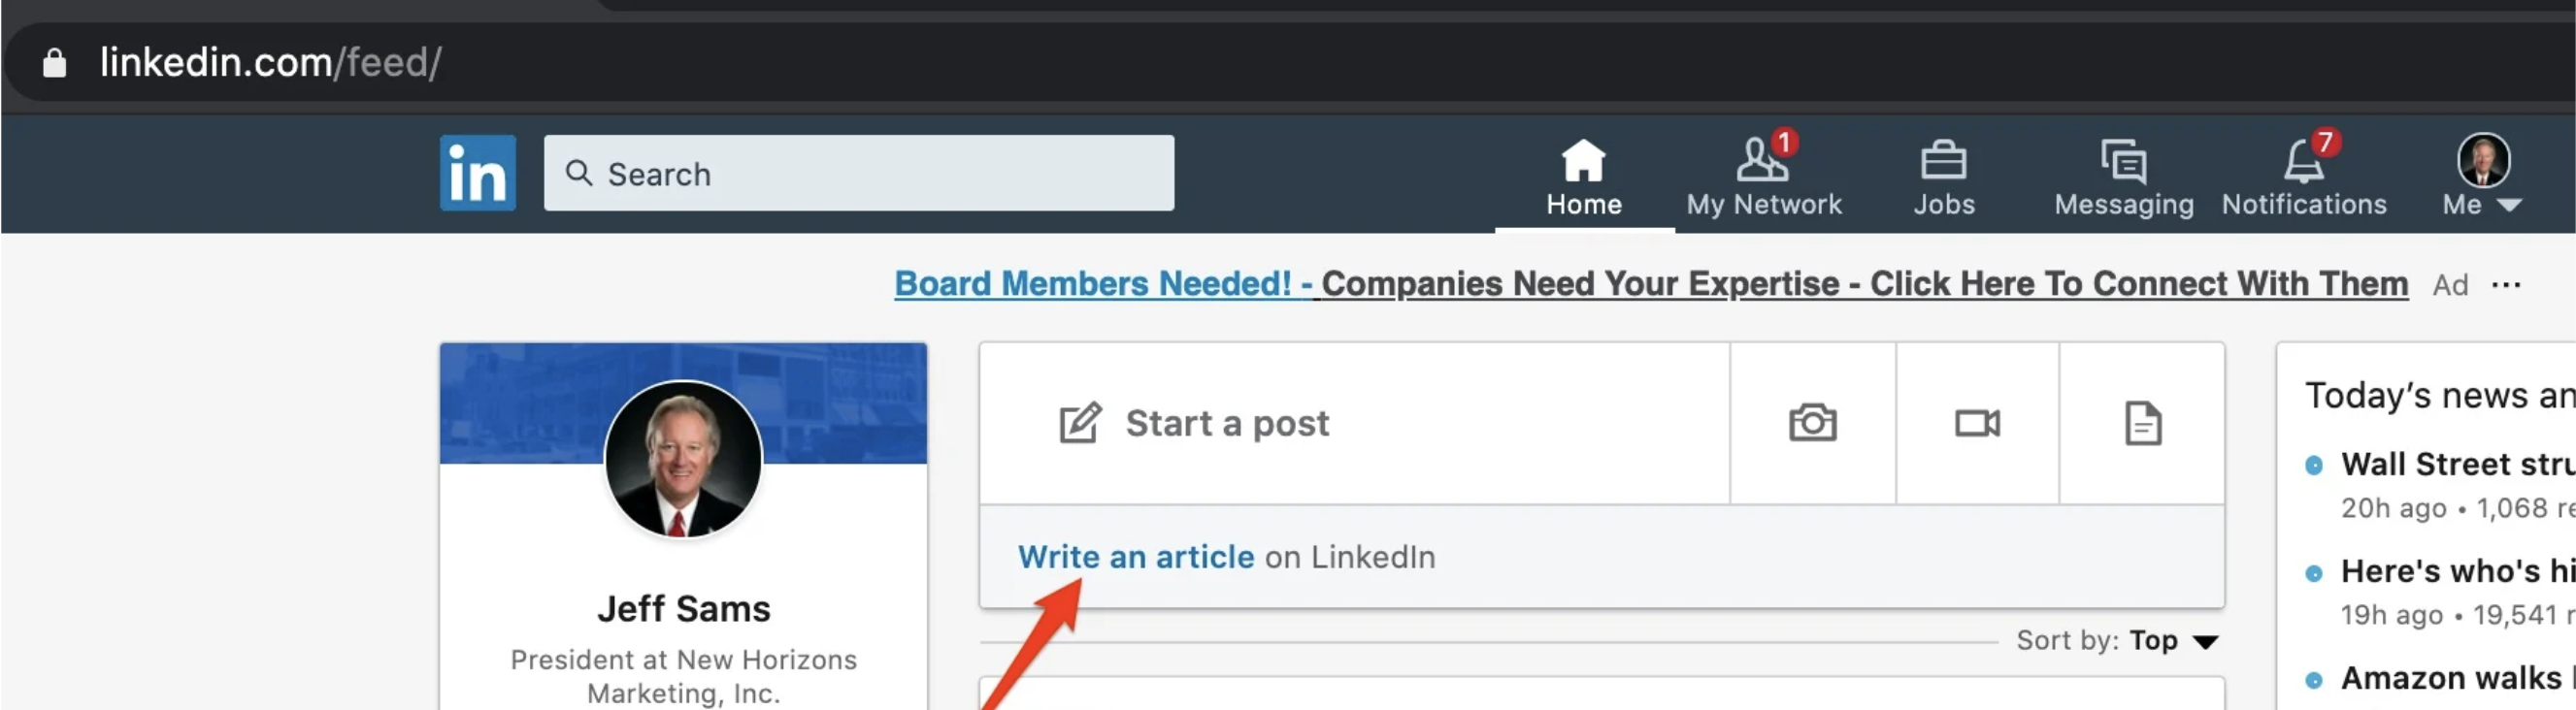 New-write-an-article-view-on-LinkedIn-for-agents